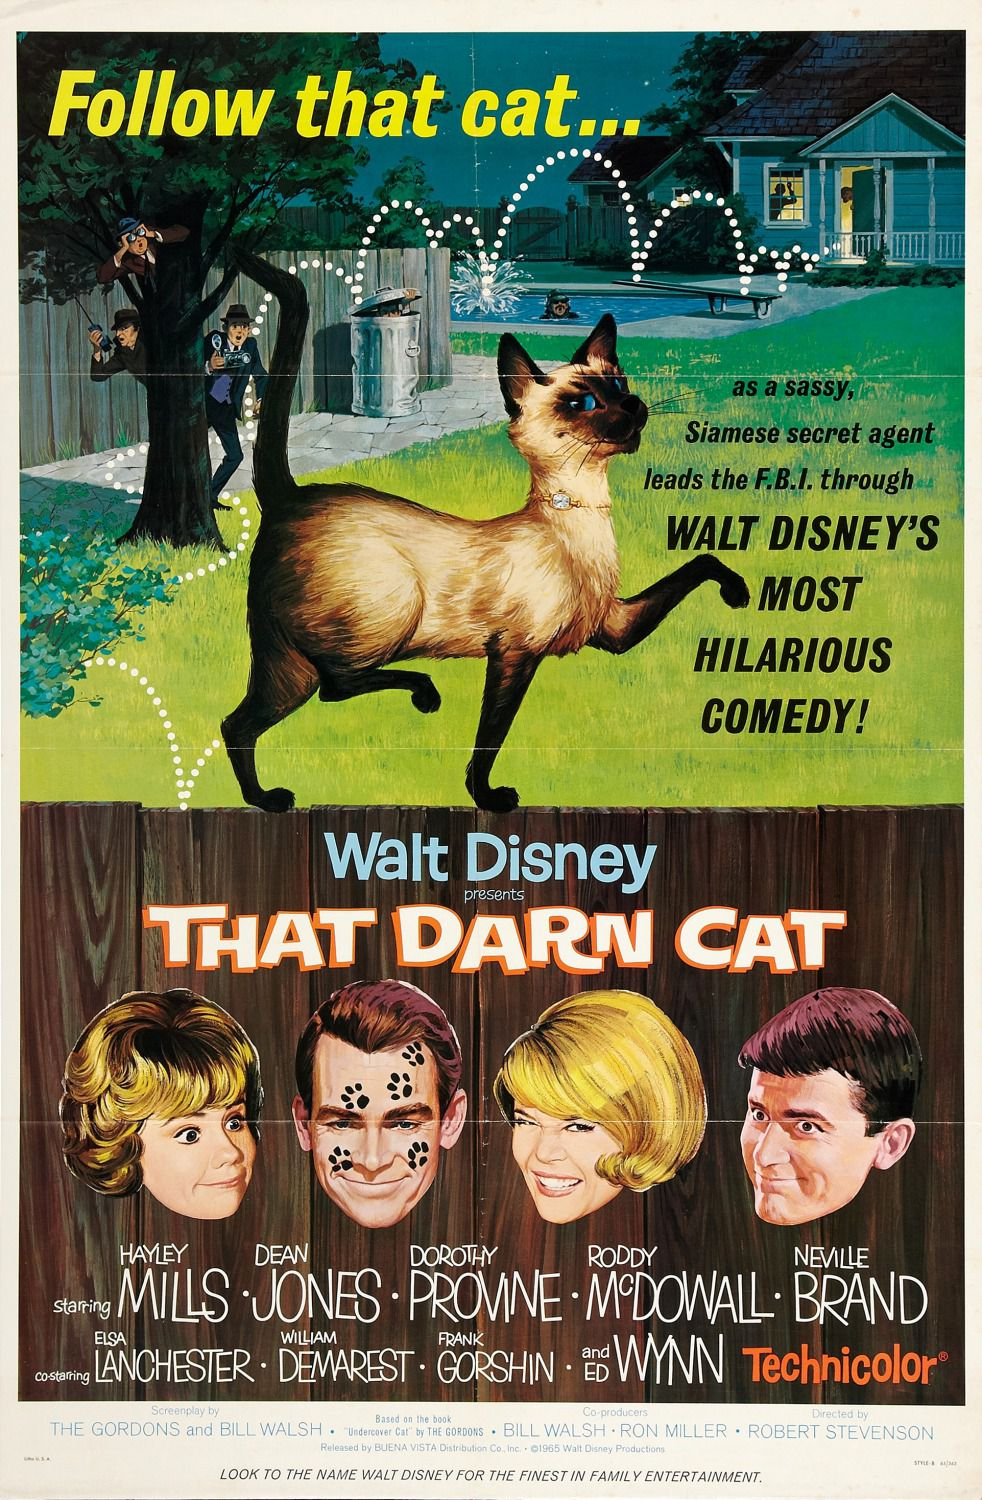 Disney Film : That Darn Cat - FBI operazione Gatto ... follow that Cat as a sassy, Siamese secret agent leads the FBI through Walt Disny's most hilarious commedy - Hayley Mills - Dean Jones - Dorothy Provine - Roddy McDowall - Neville Brand